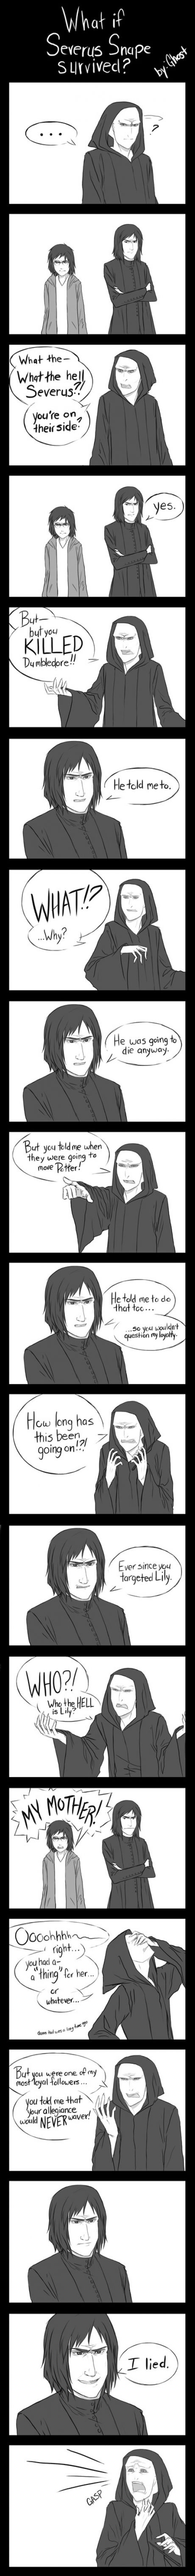 What if....SEVERUS SNAPE SURVIVVED?!?!?!?!?!